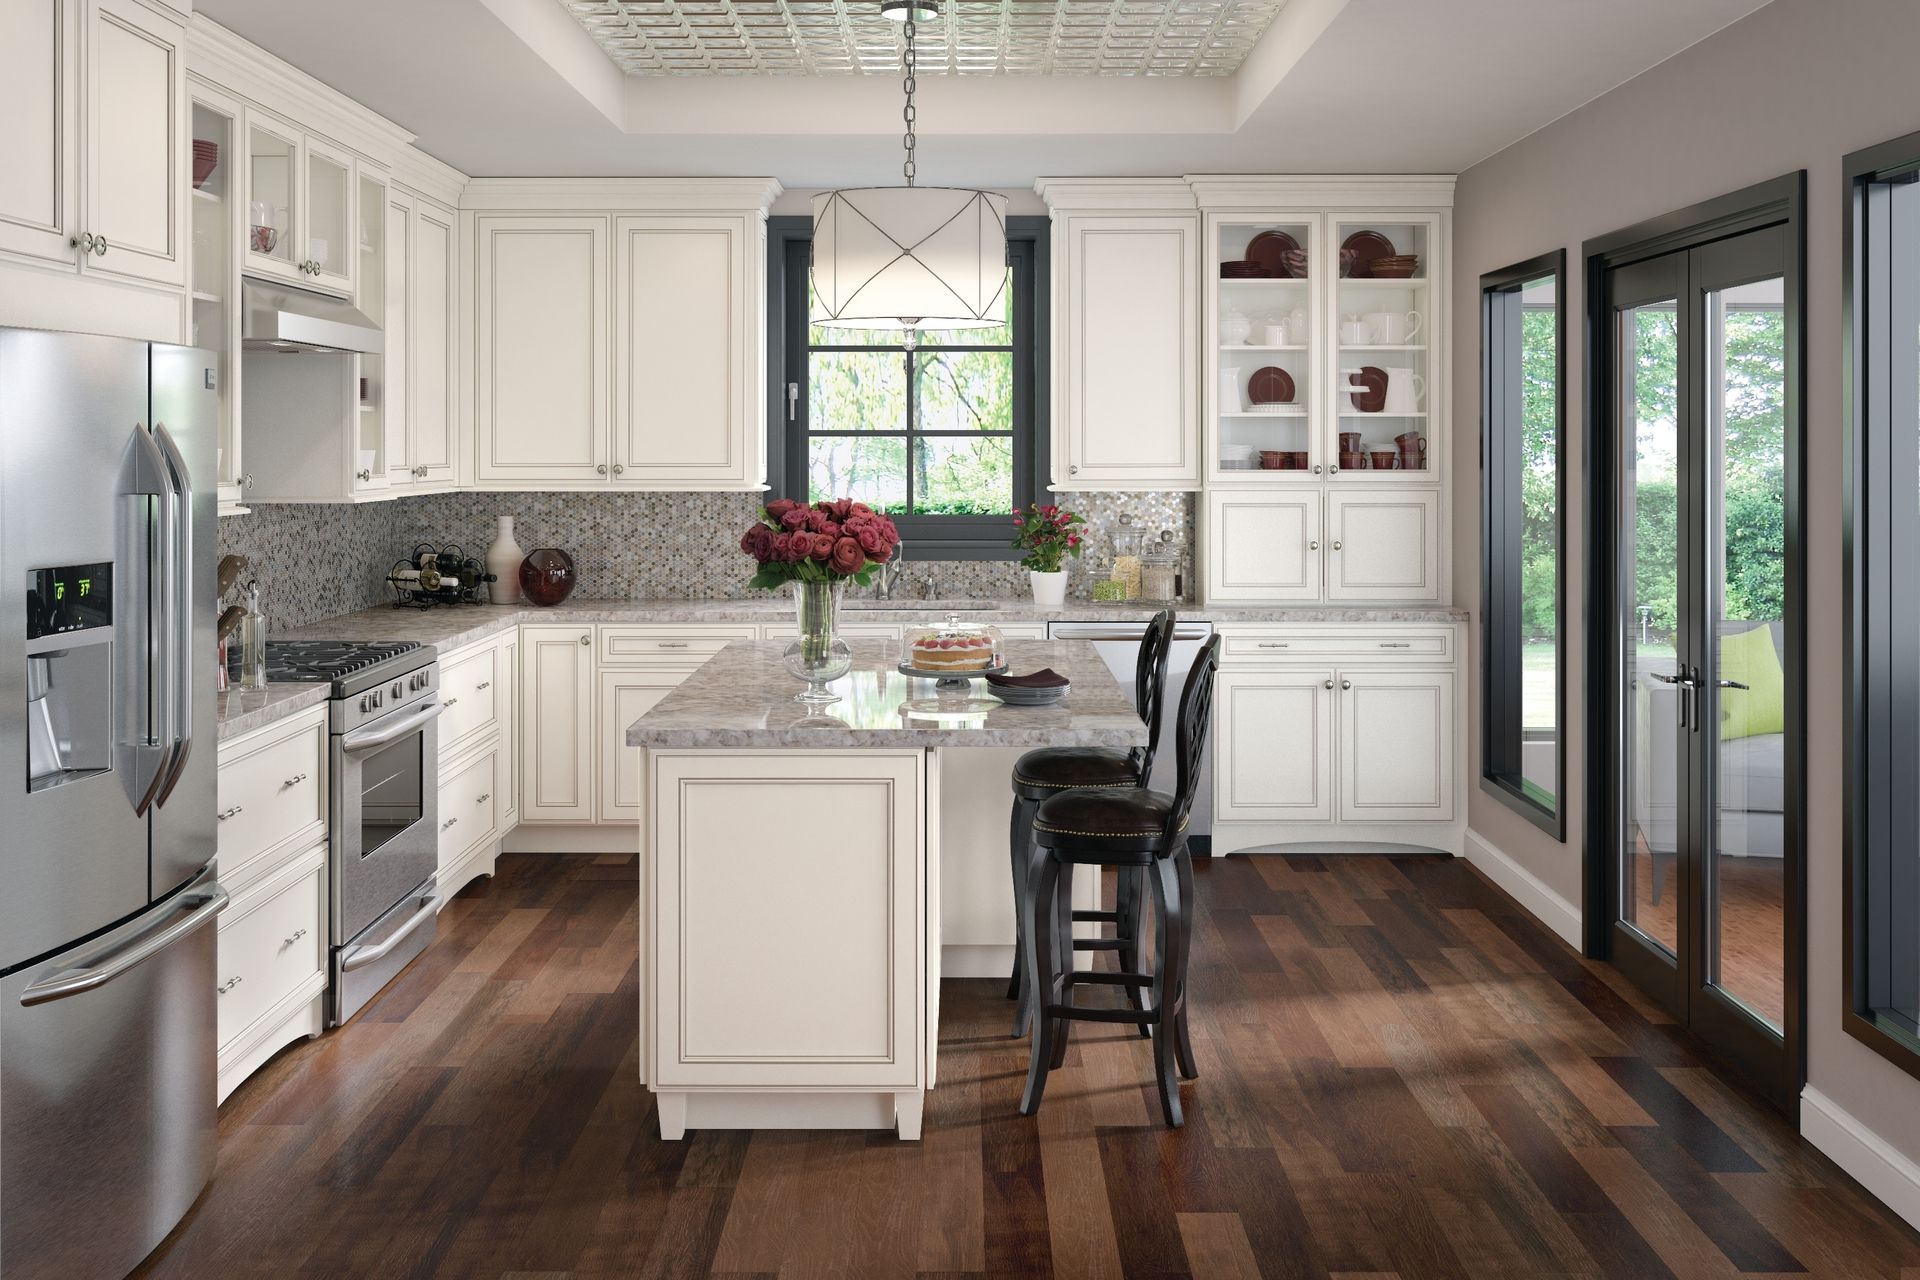 Cardell kitchen cabinets hannaford maple in dove white for Dove white cabinets with cocoa glaze